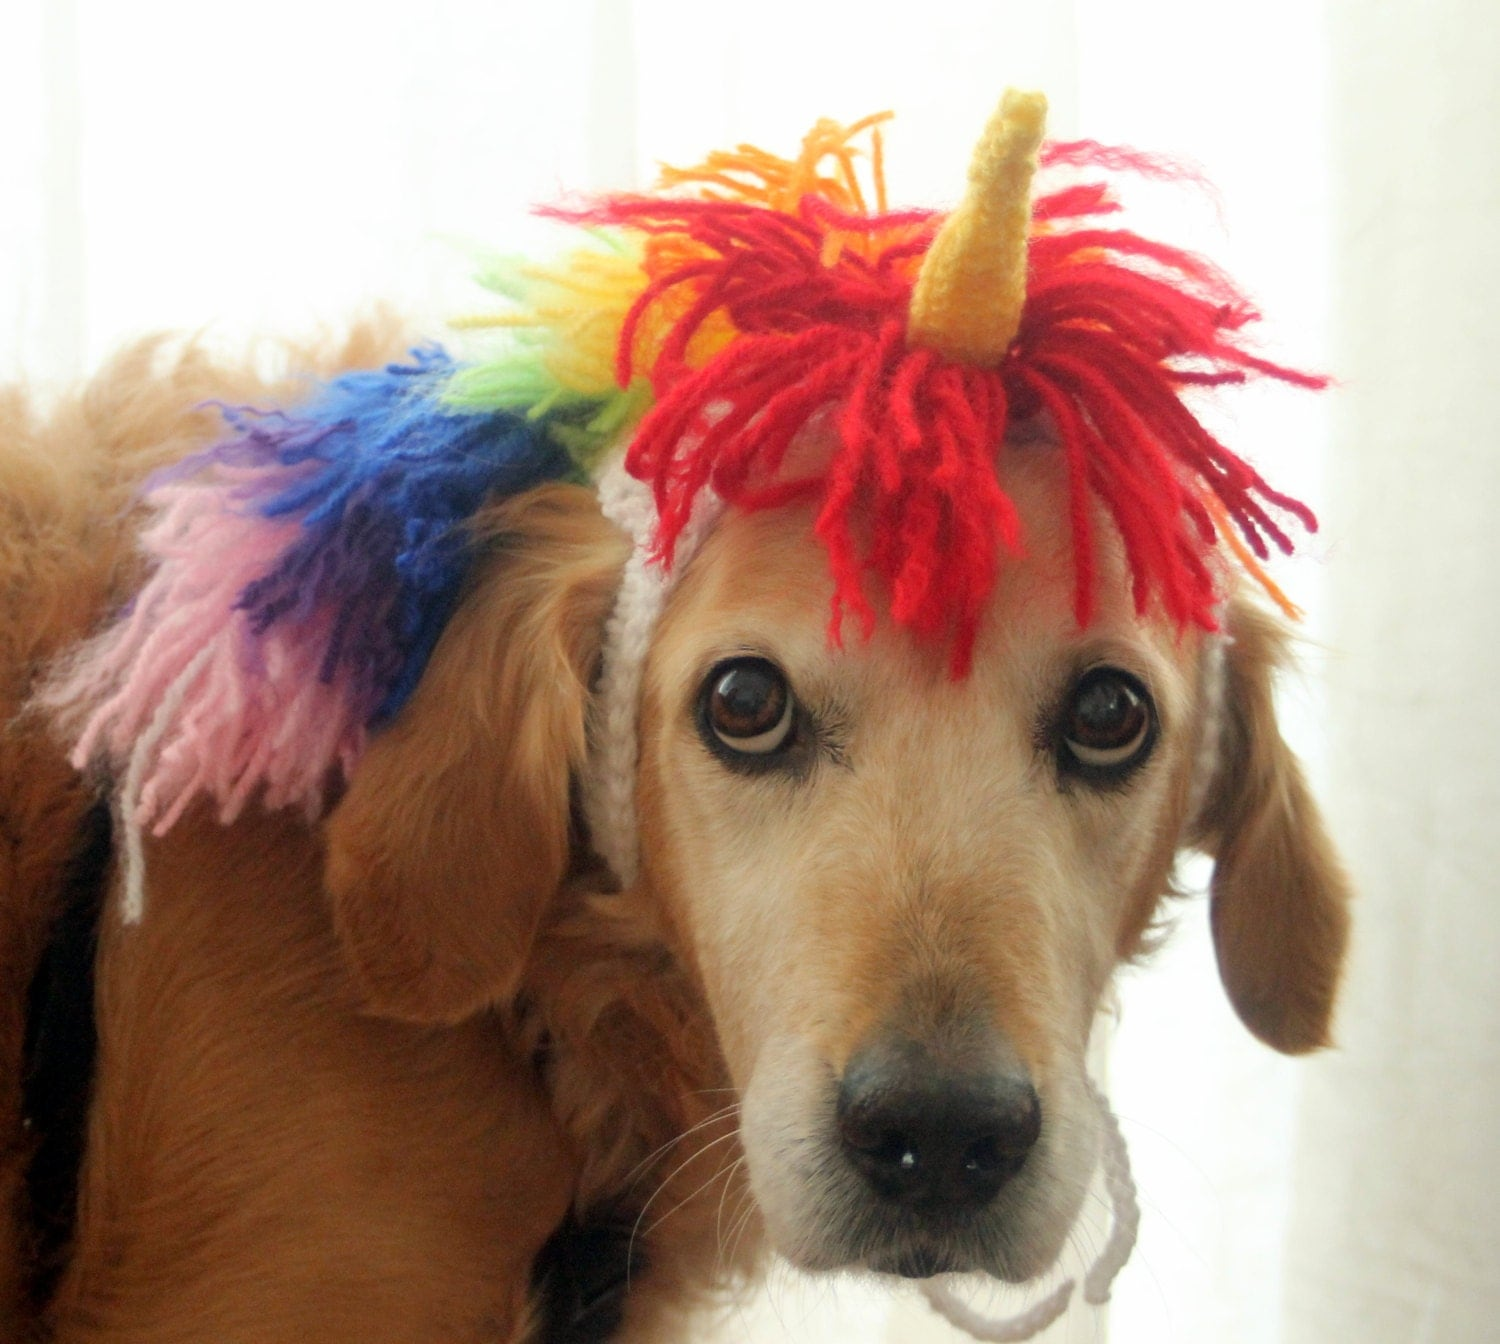 unicorn costume for dogs unicorn mane and horn for large breed dogs halloween costumes